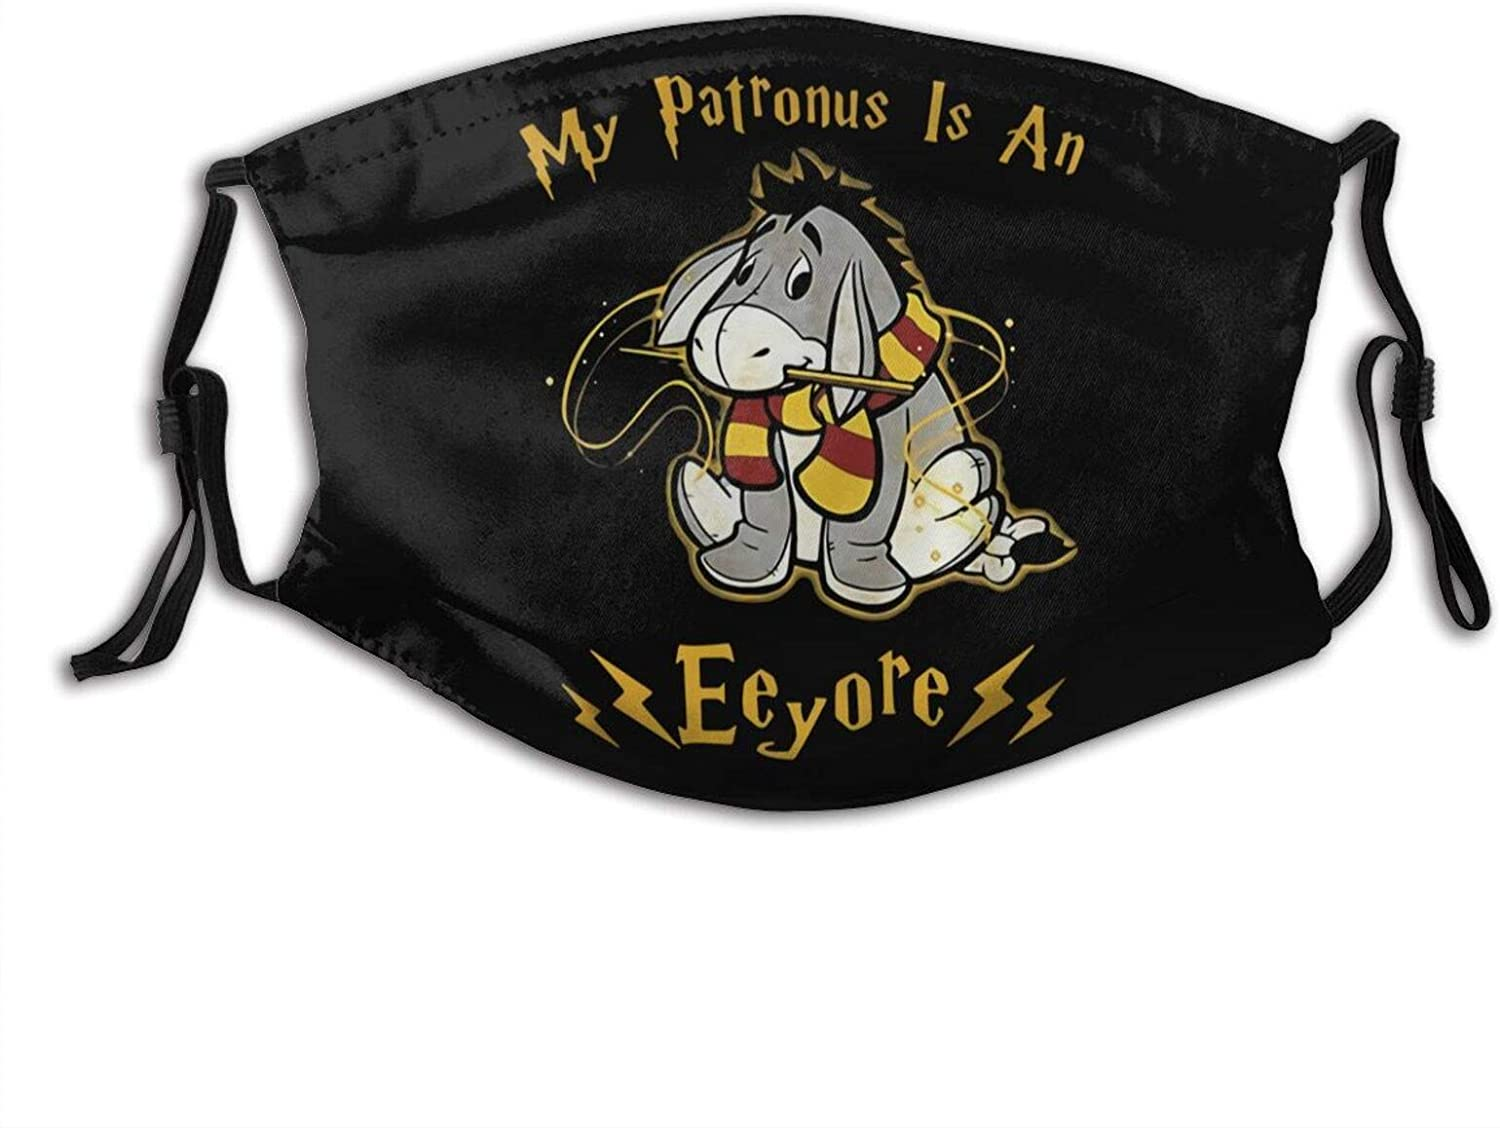 My Patronus Is An Eeyore Adjustable Unisex Reusable Face Mask Anti-Dust Masks Mouth Scarf Balaclava Face Protection For Outdoor With 2 Filters